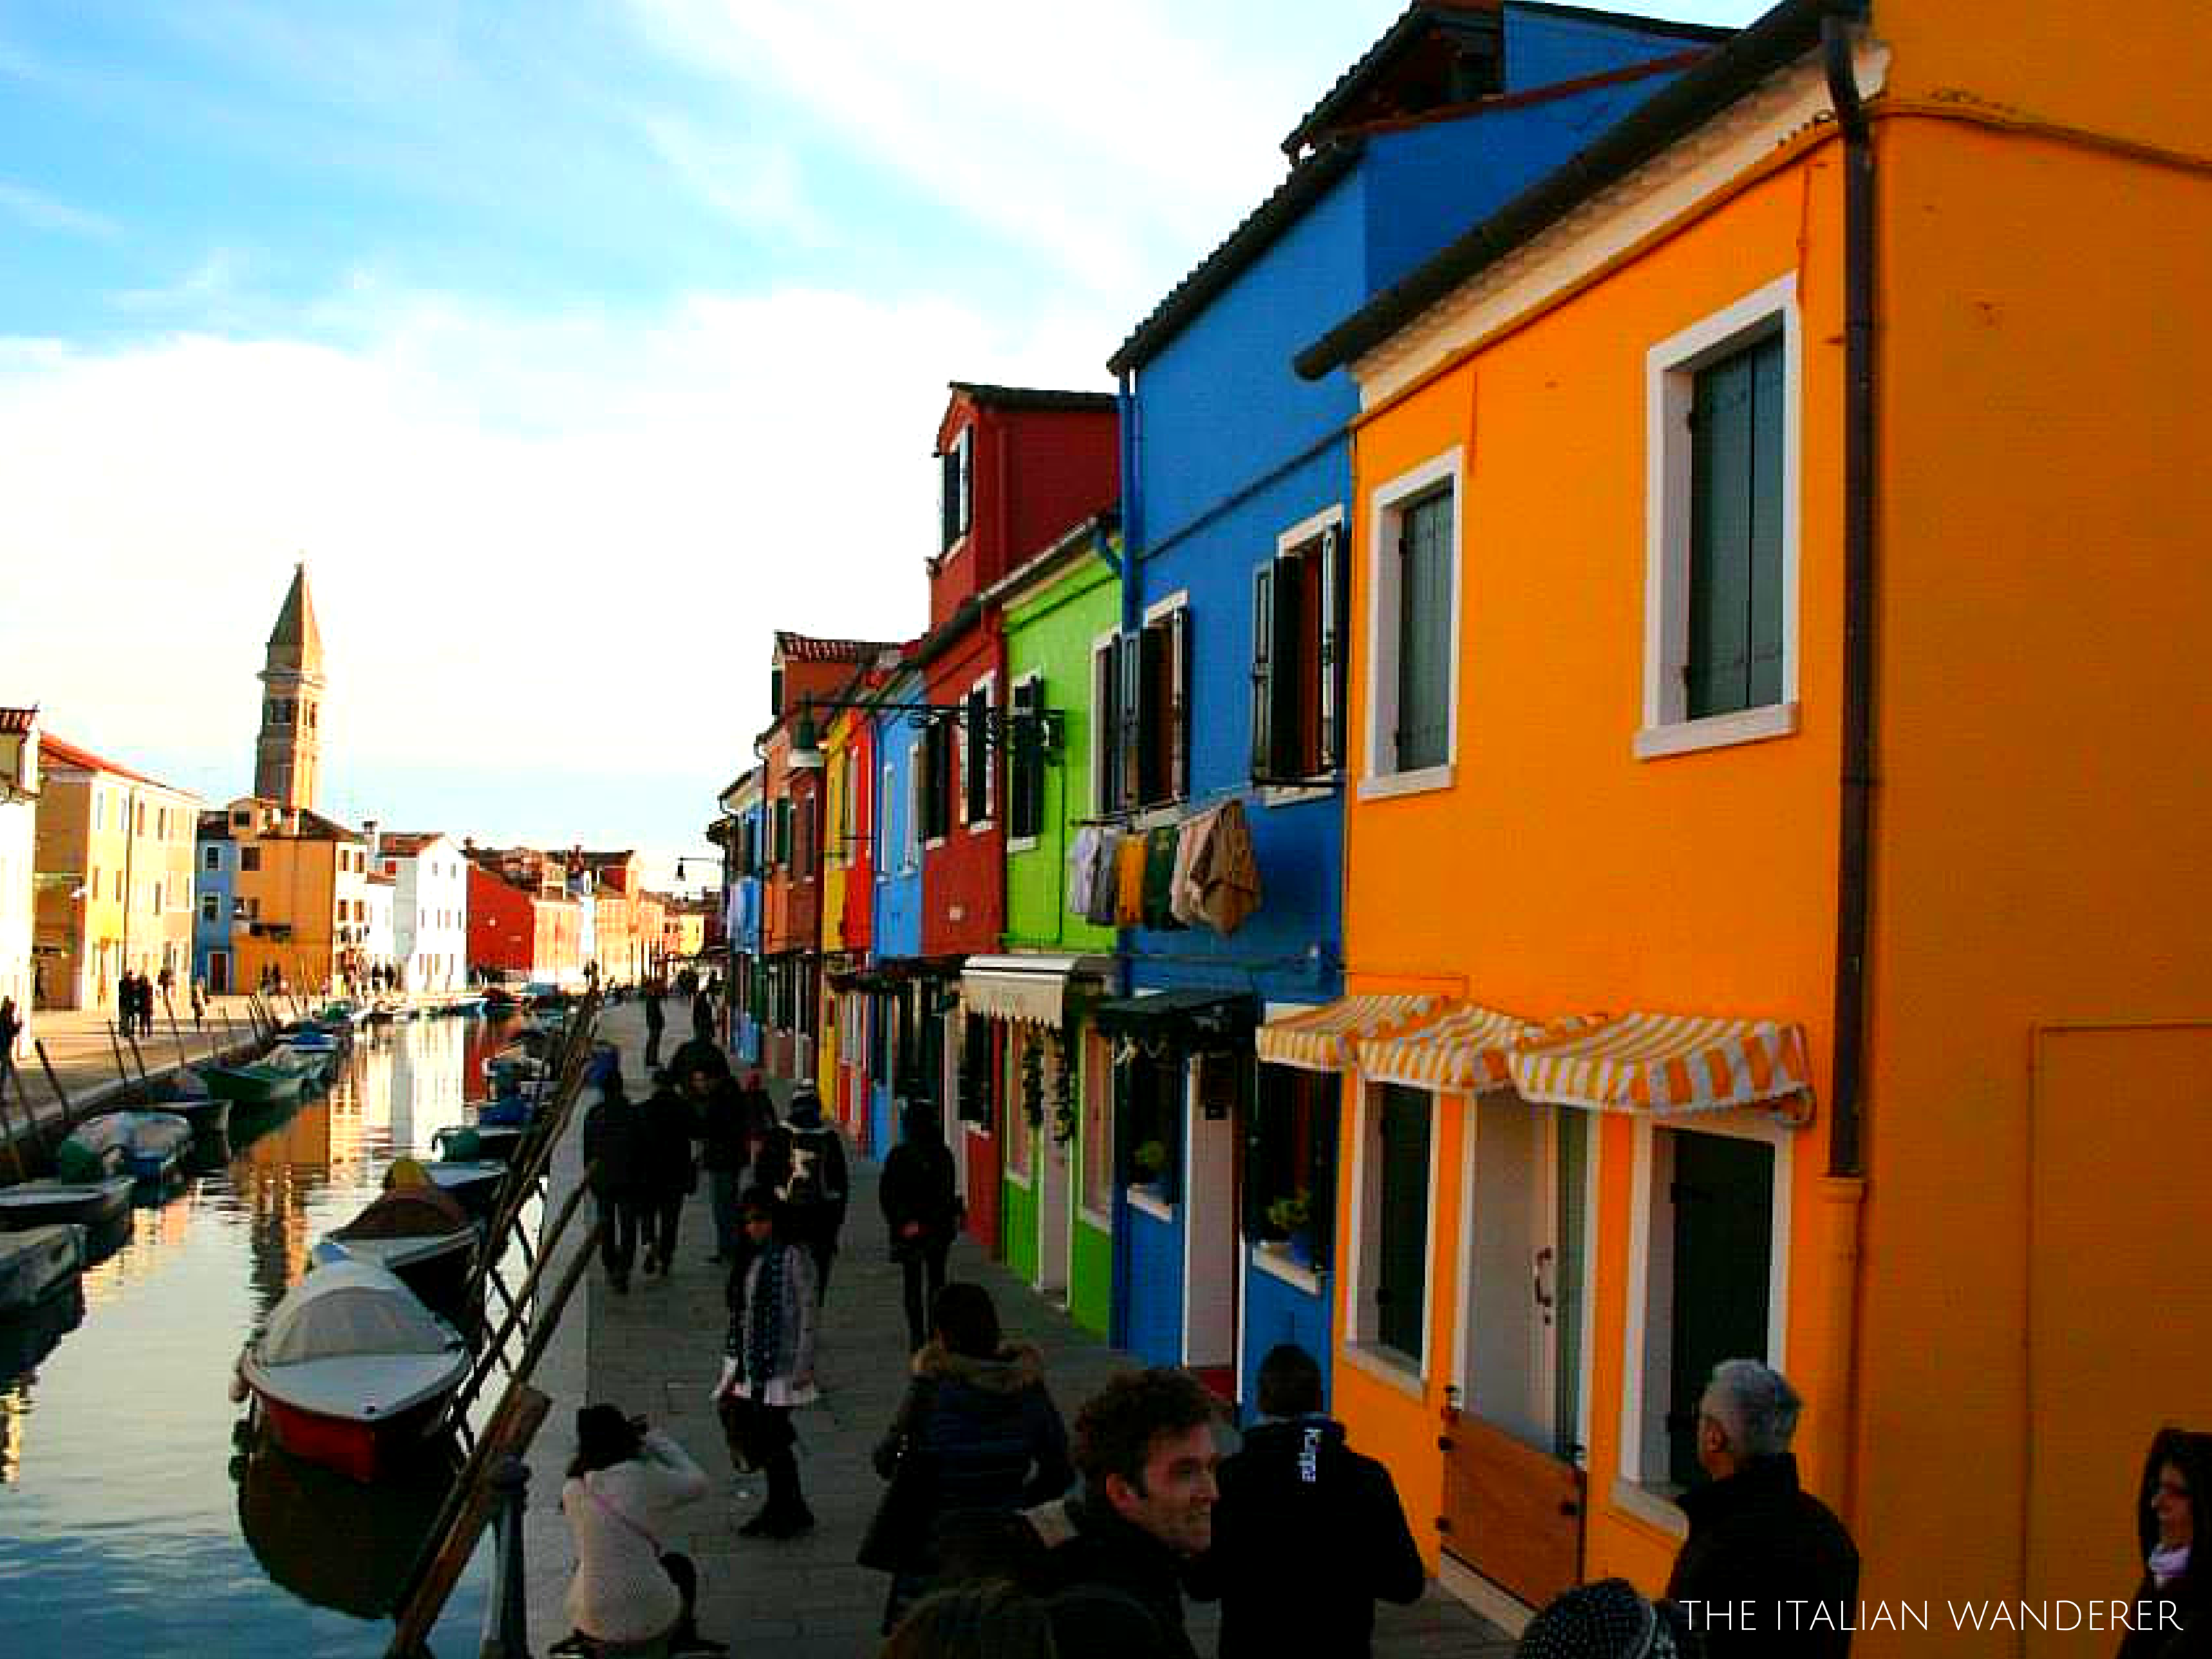 Burano, its colored houses are a joy for the eyes.